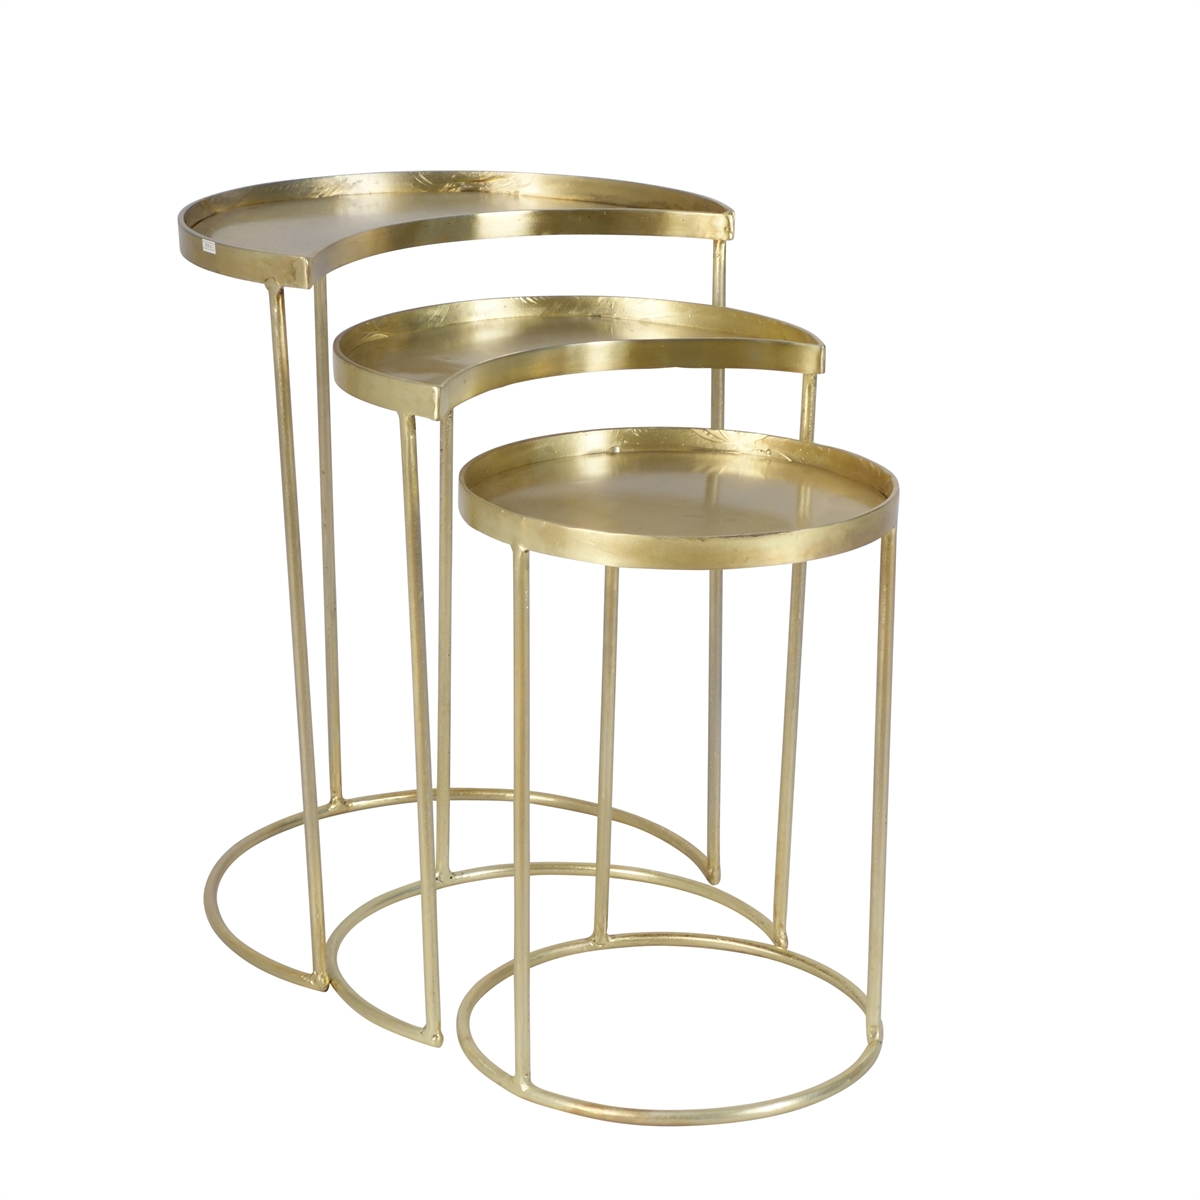 metal crescent round accent tables gold sagebrook home iron table log for pricing and availability material large coffee with storage high bedside garden set interior ideas